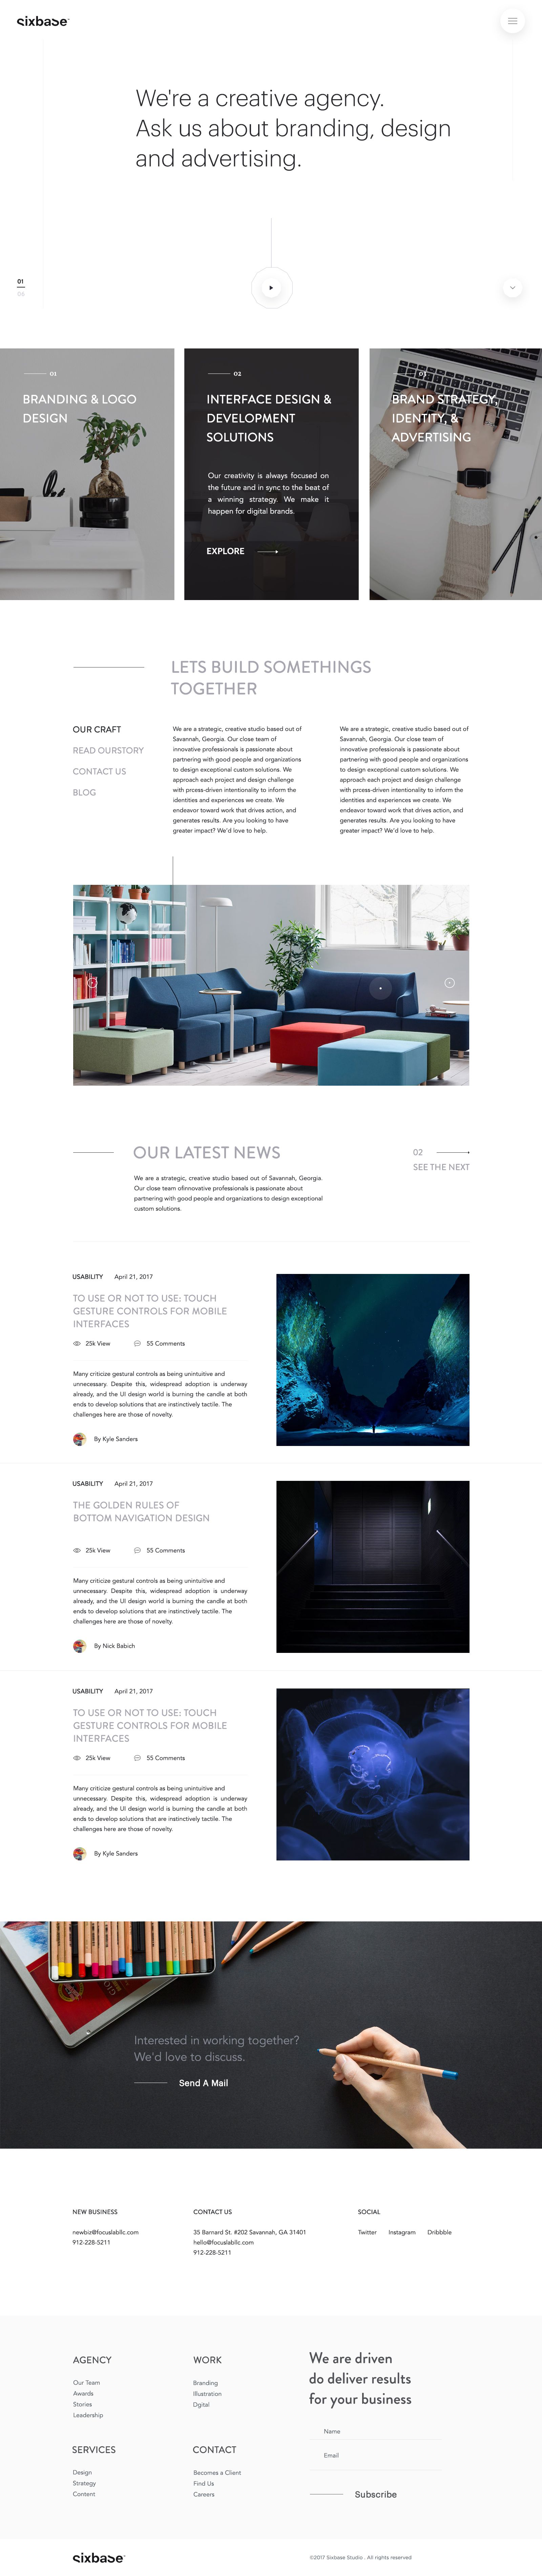 20 Single Page Websites For Your Inspiration Website Design Layout Website Design Inspiration Website Design